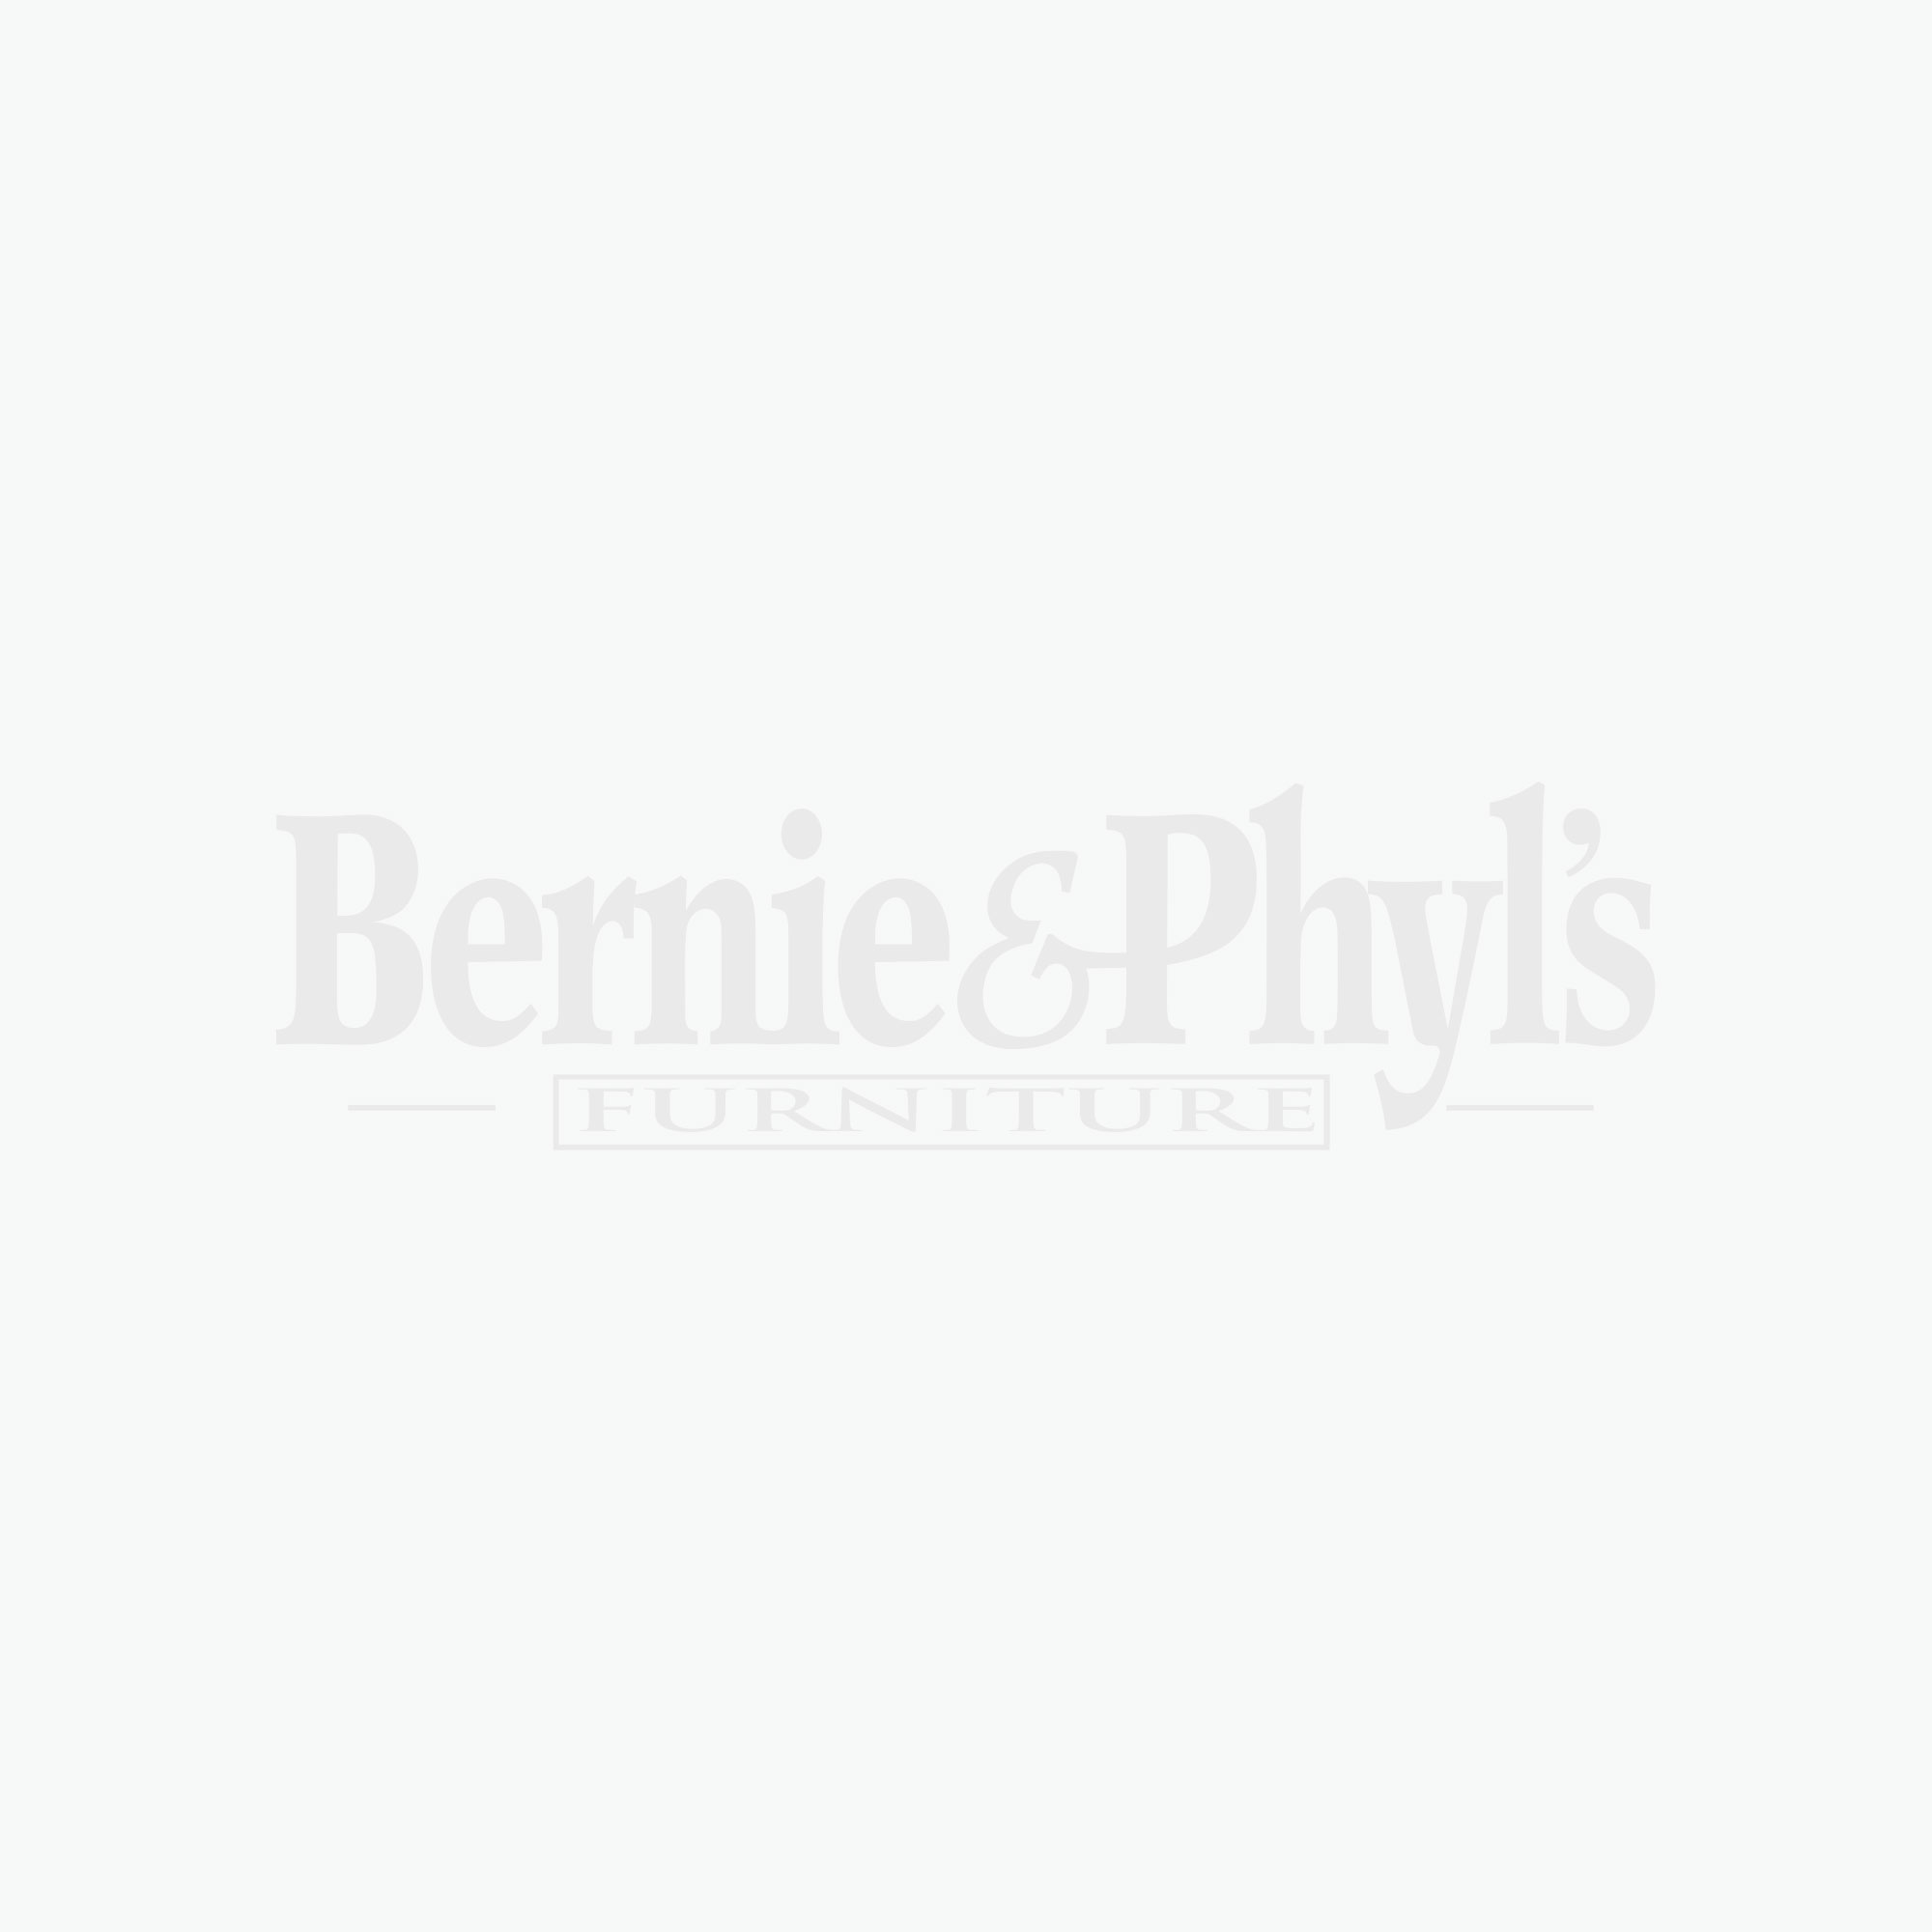 Burgundy Leather Look Accent Chair   Bernie U0026 Phylu0027s Furniture   By Monarch  Specialties